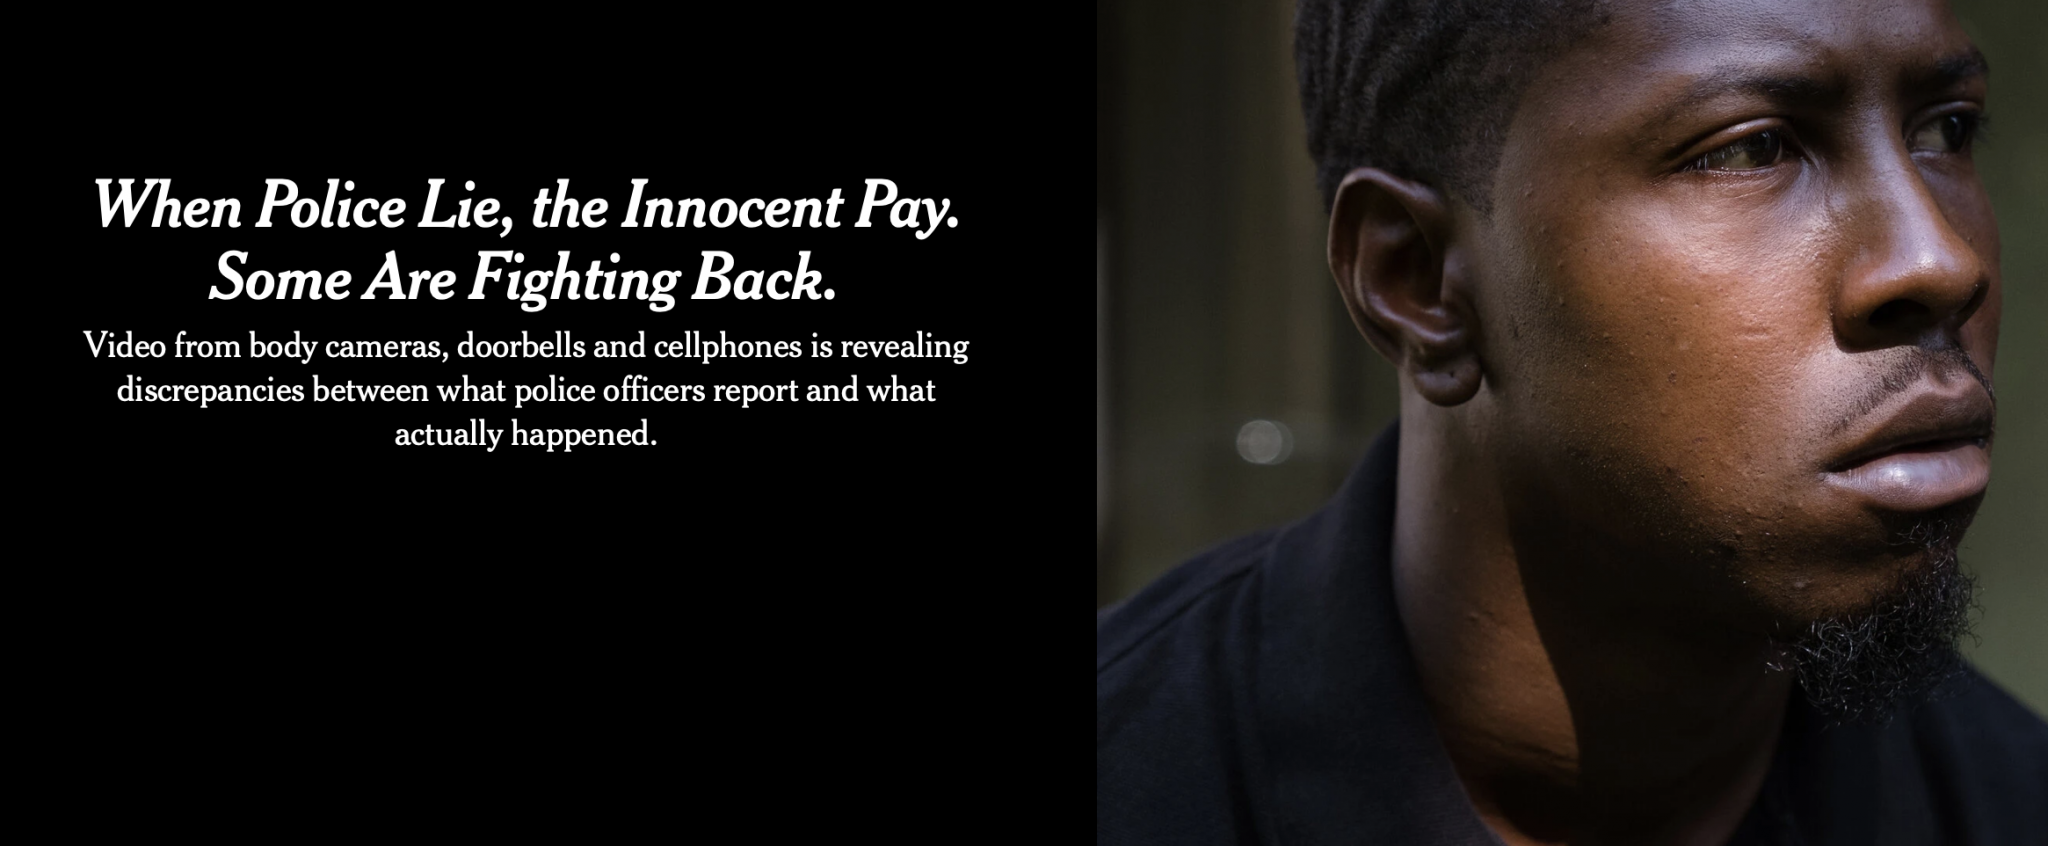 When Police Lie, the Innocent Pay. Some Are Fighting Back.